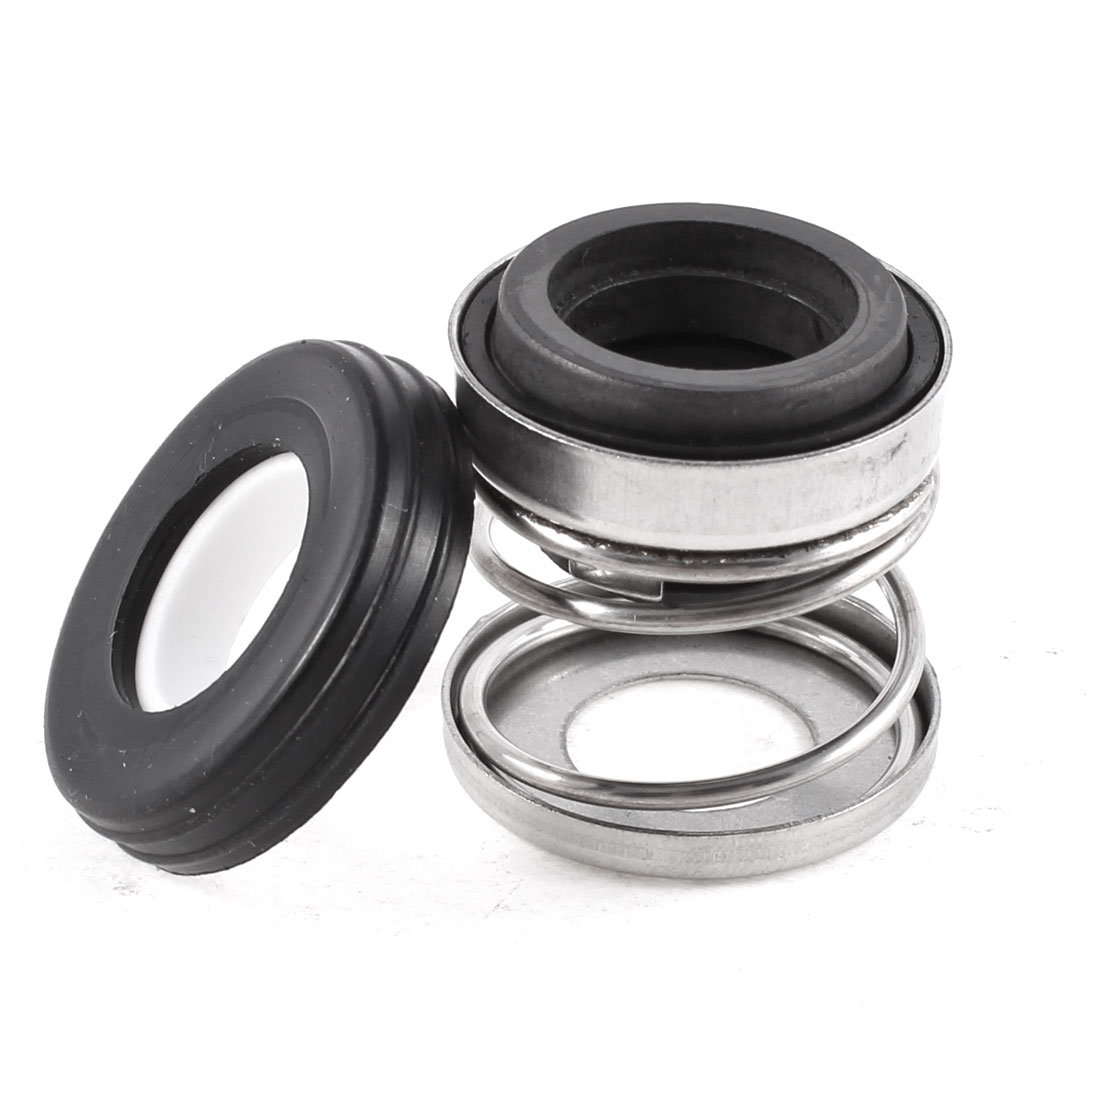 10mm x 22mm x 26mm Rubber Bellows Pump Shaft Sealing Mechanical Seal